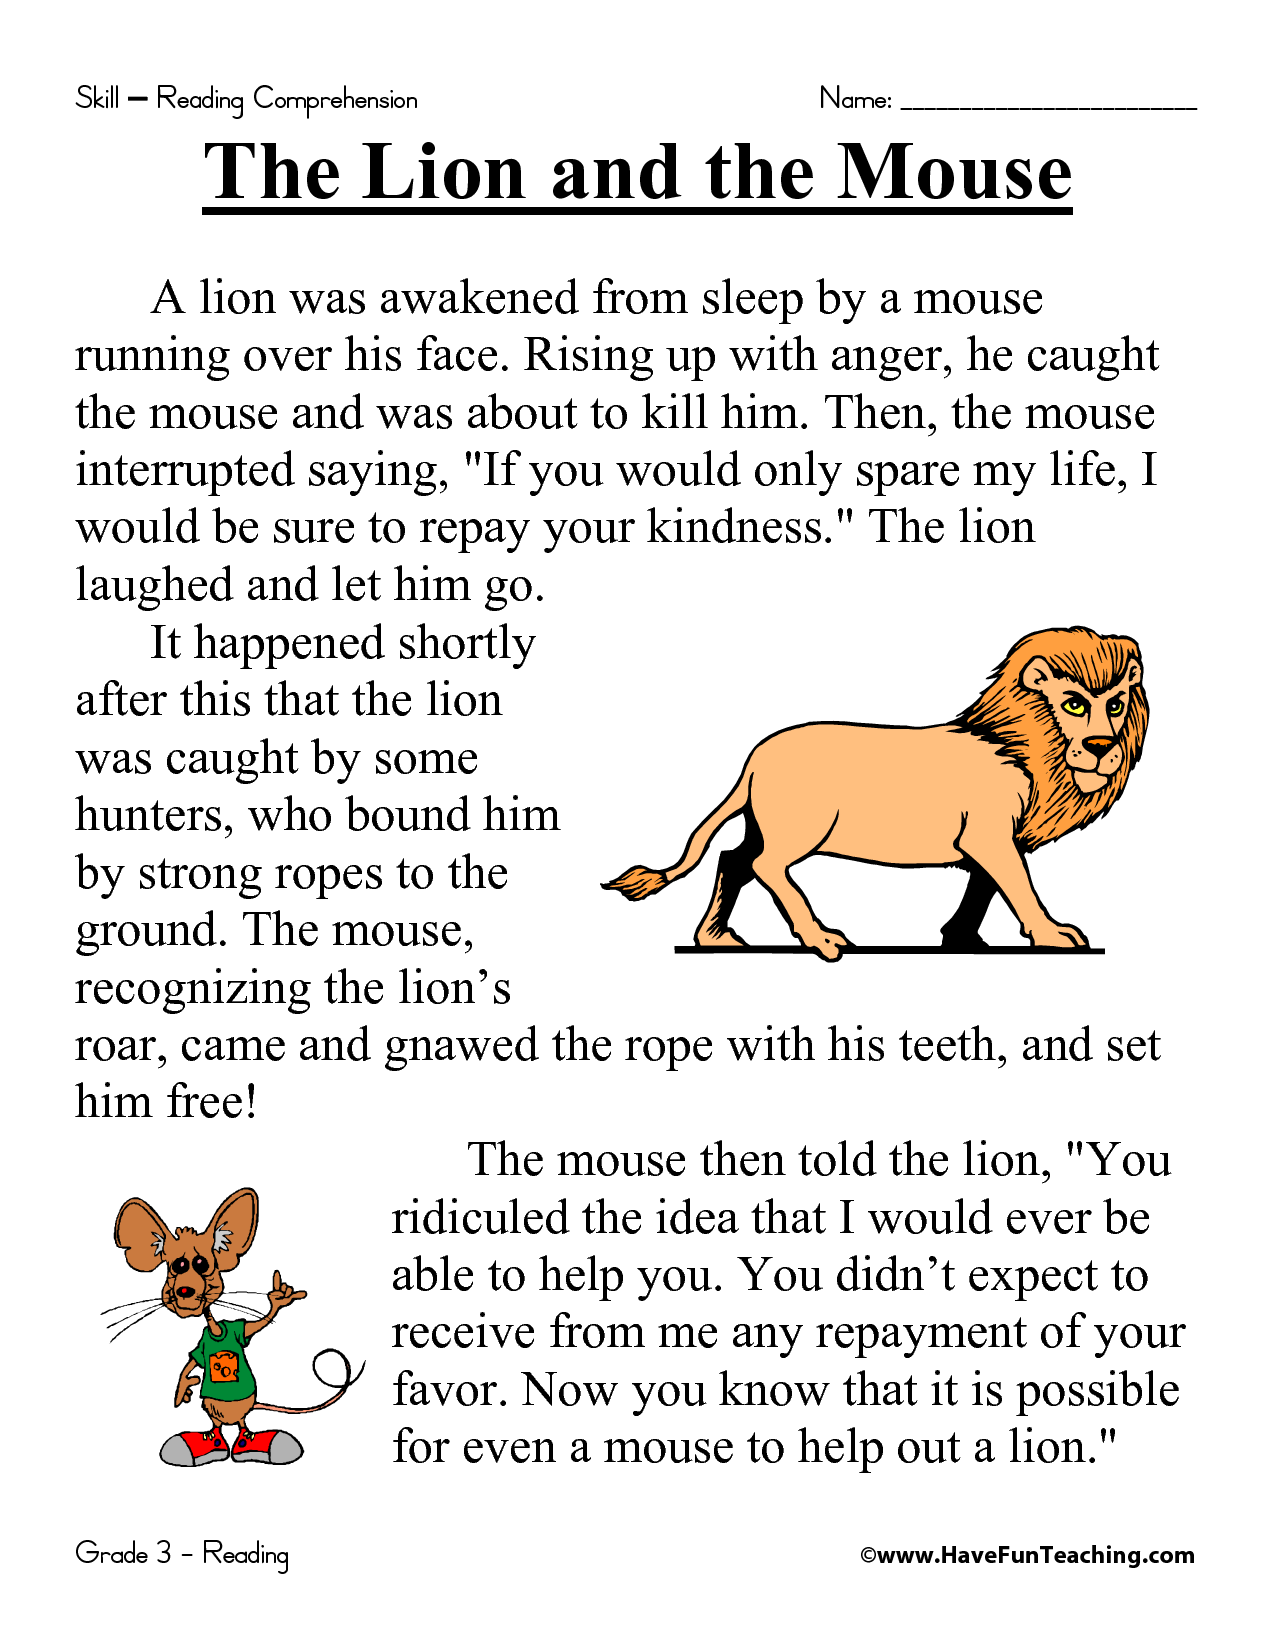 Worksheet Short Reading Passages printable reading comprehension worksheets inc exercises for first grade the lion and mouse worksheet